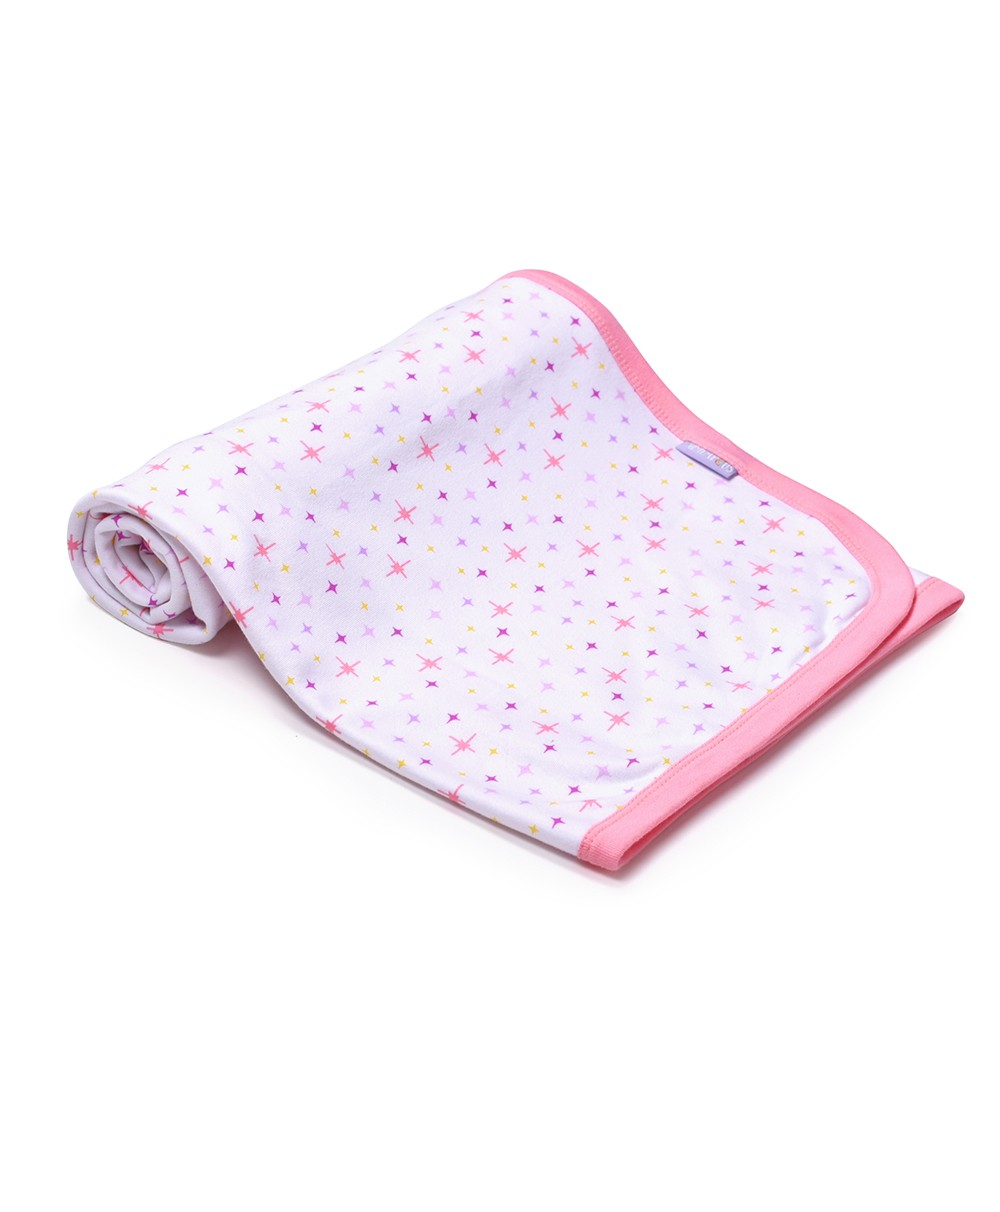 Coming Home Knitted Blanket- Unicorn